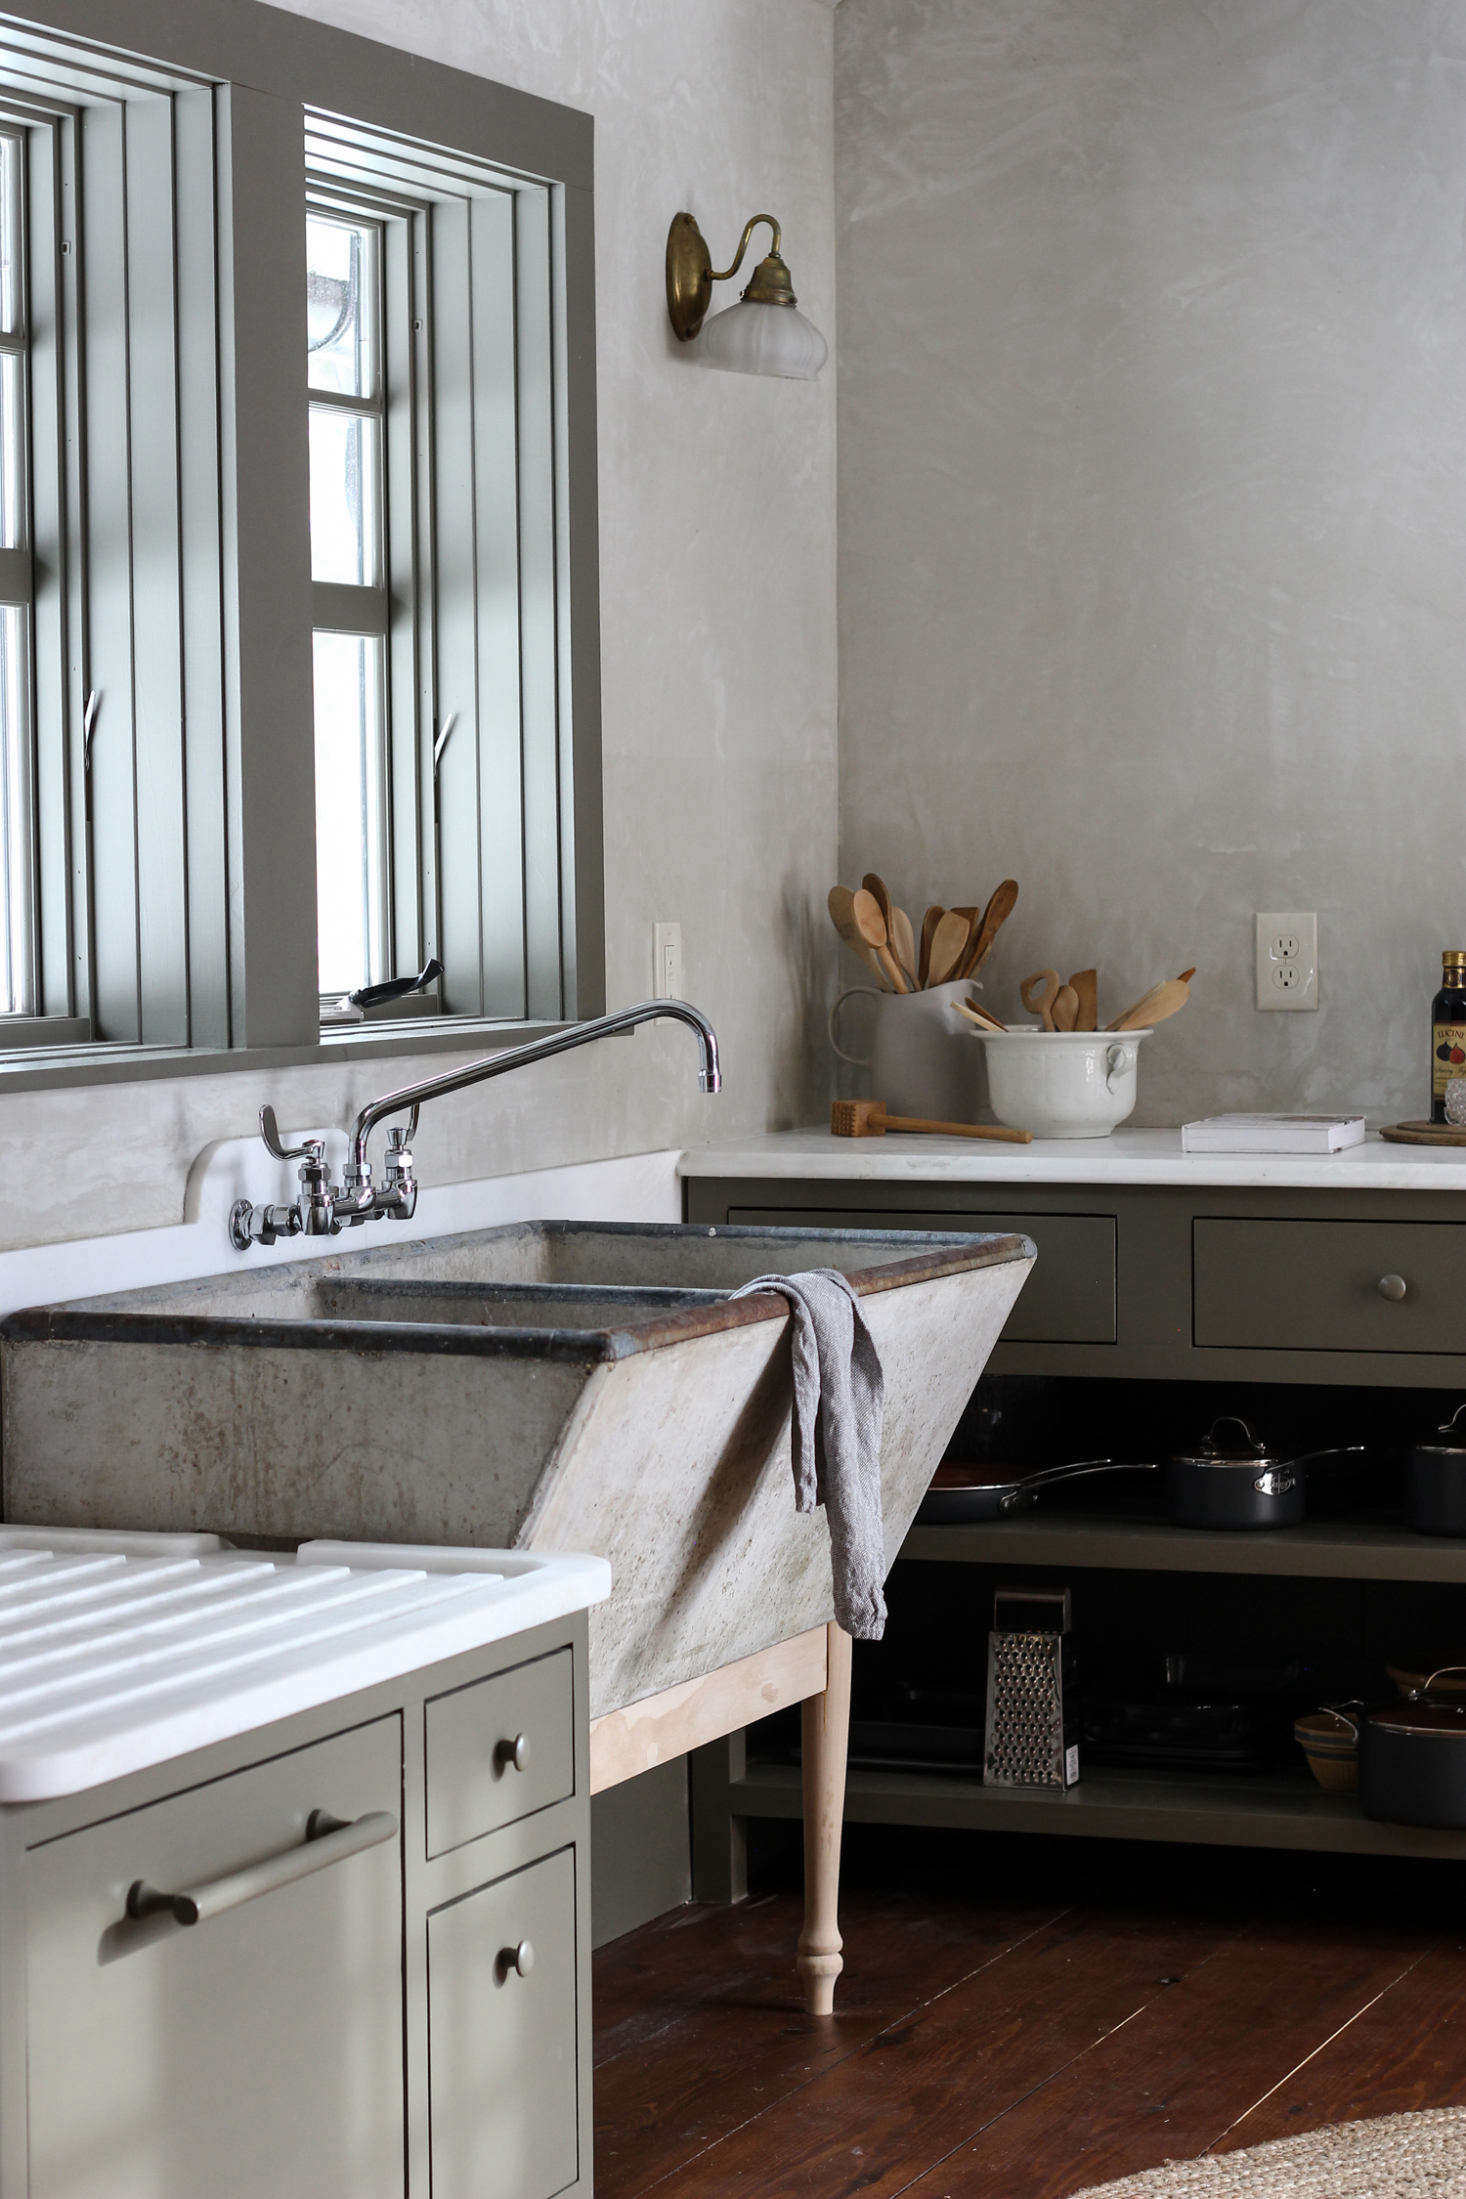 Steal This Look A New York Kitchen With Old World Charm Remodelista